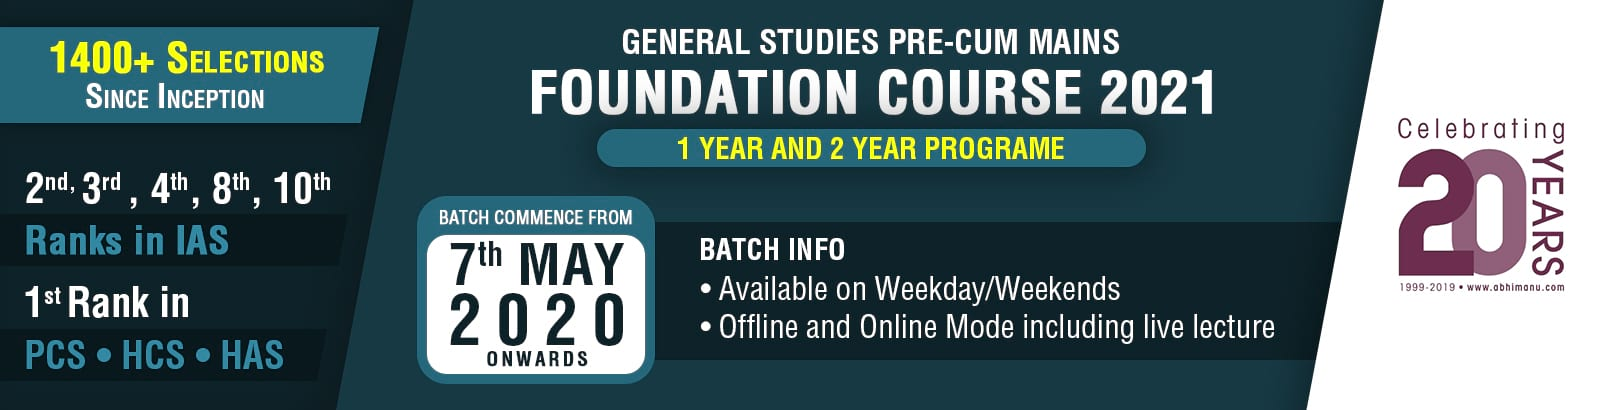 Ias-pre-cum-main-foundation-course-for-ias-2021